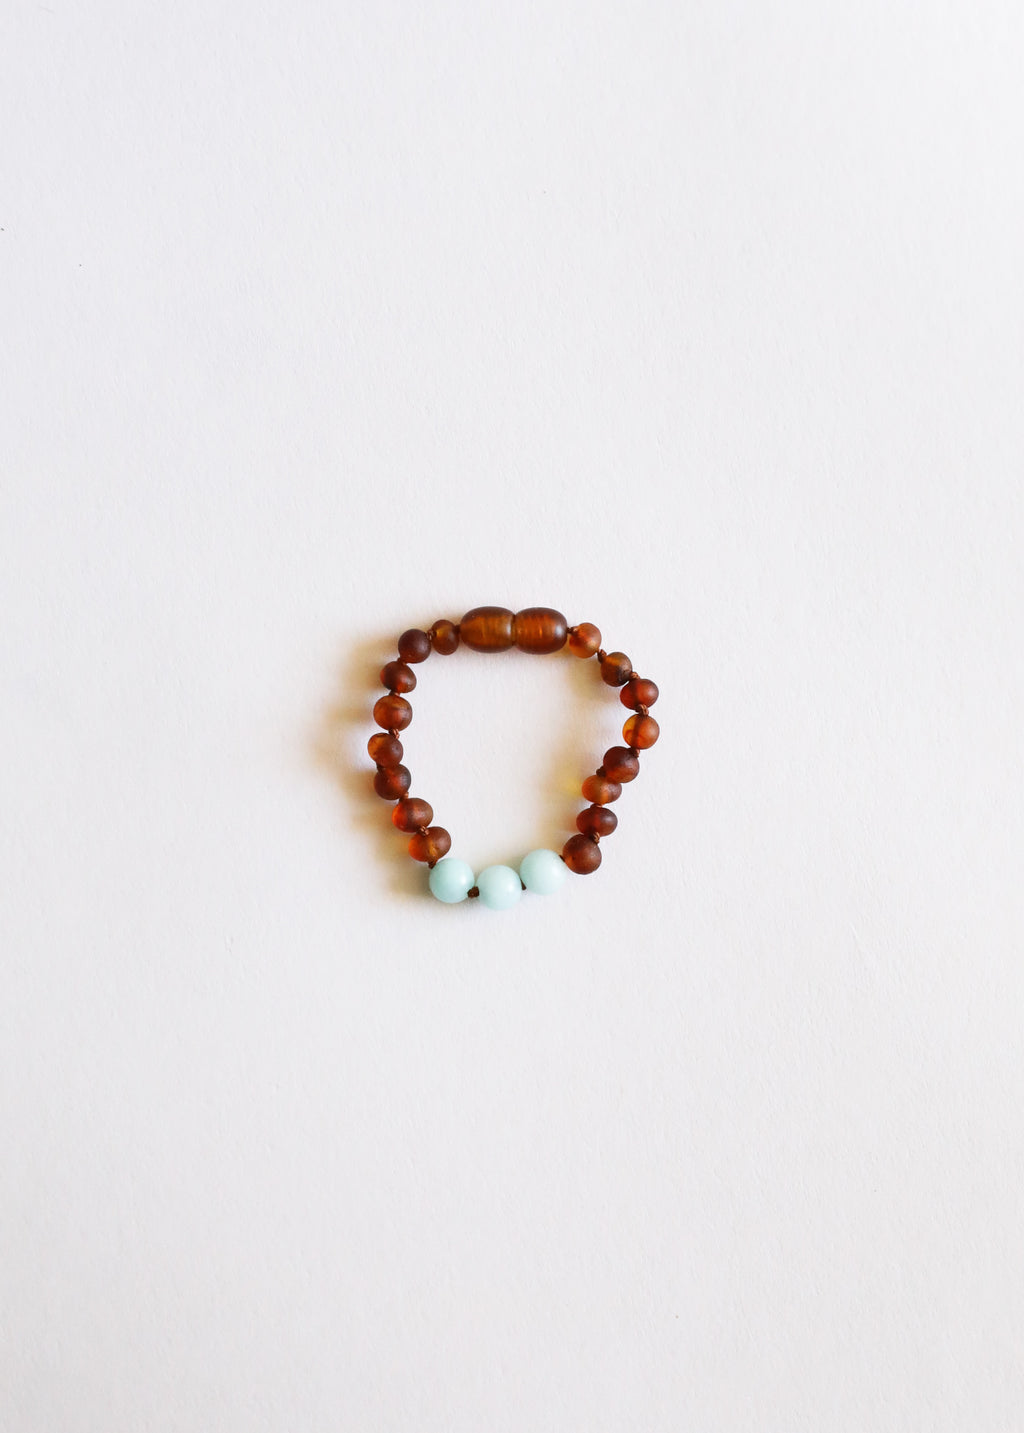 Raw Cognac Amber + Amazonite || Anklet or Bracelet